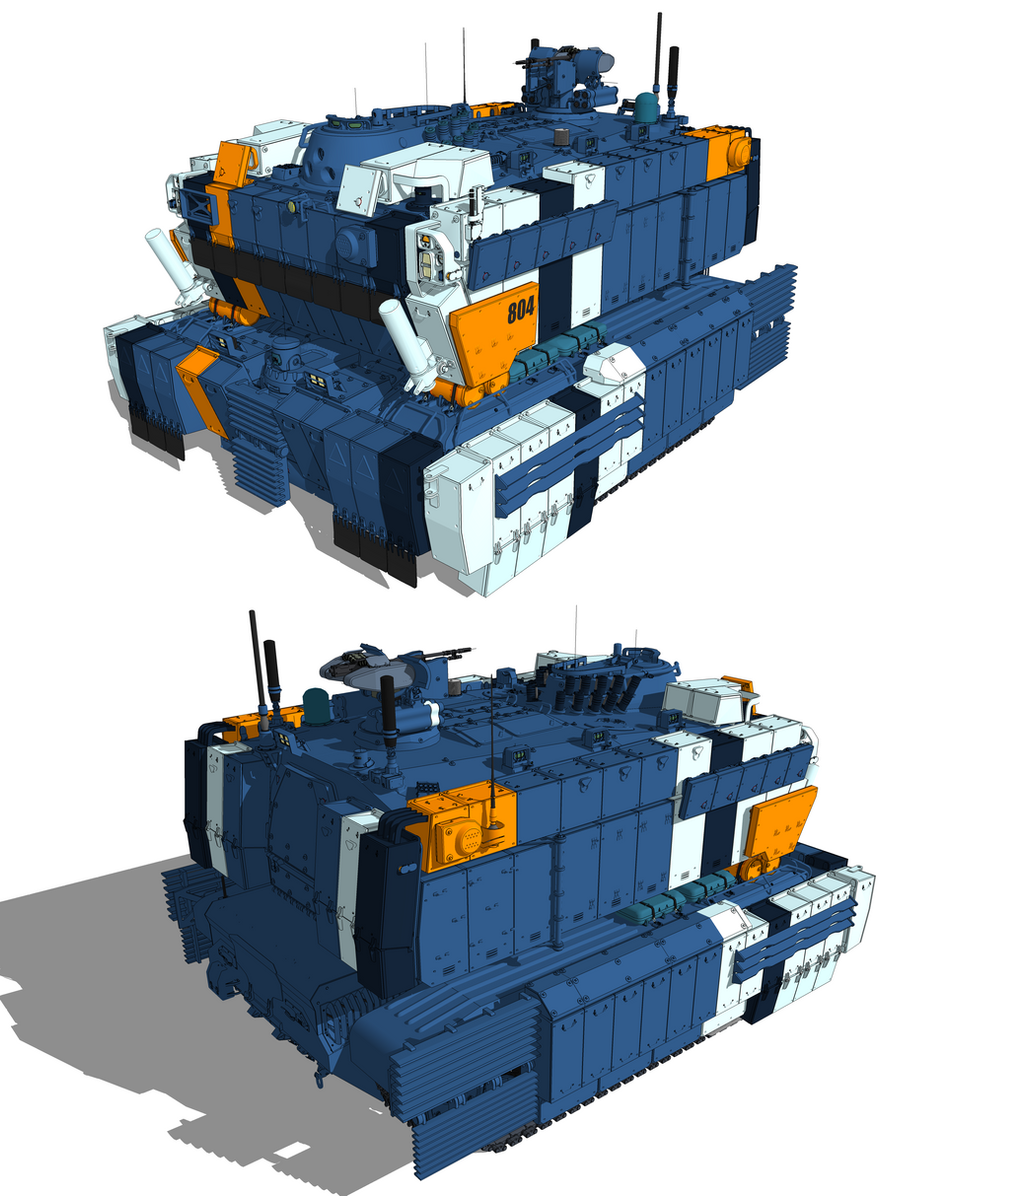 Base vehicle concept by flaketom